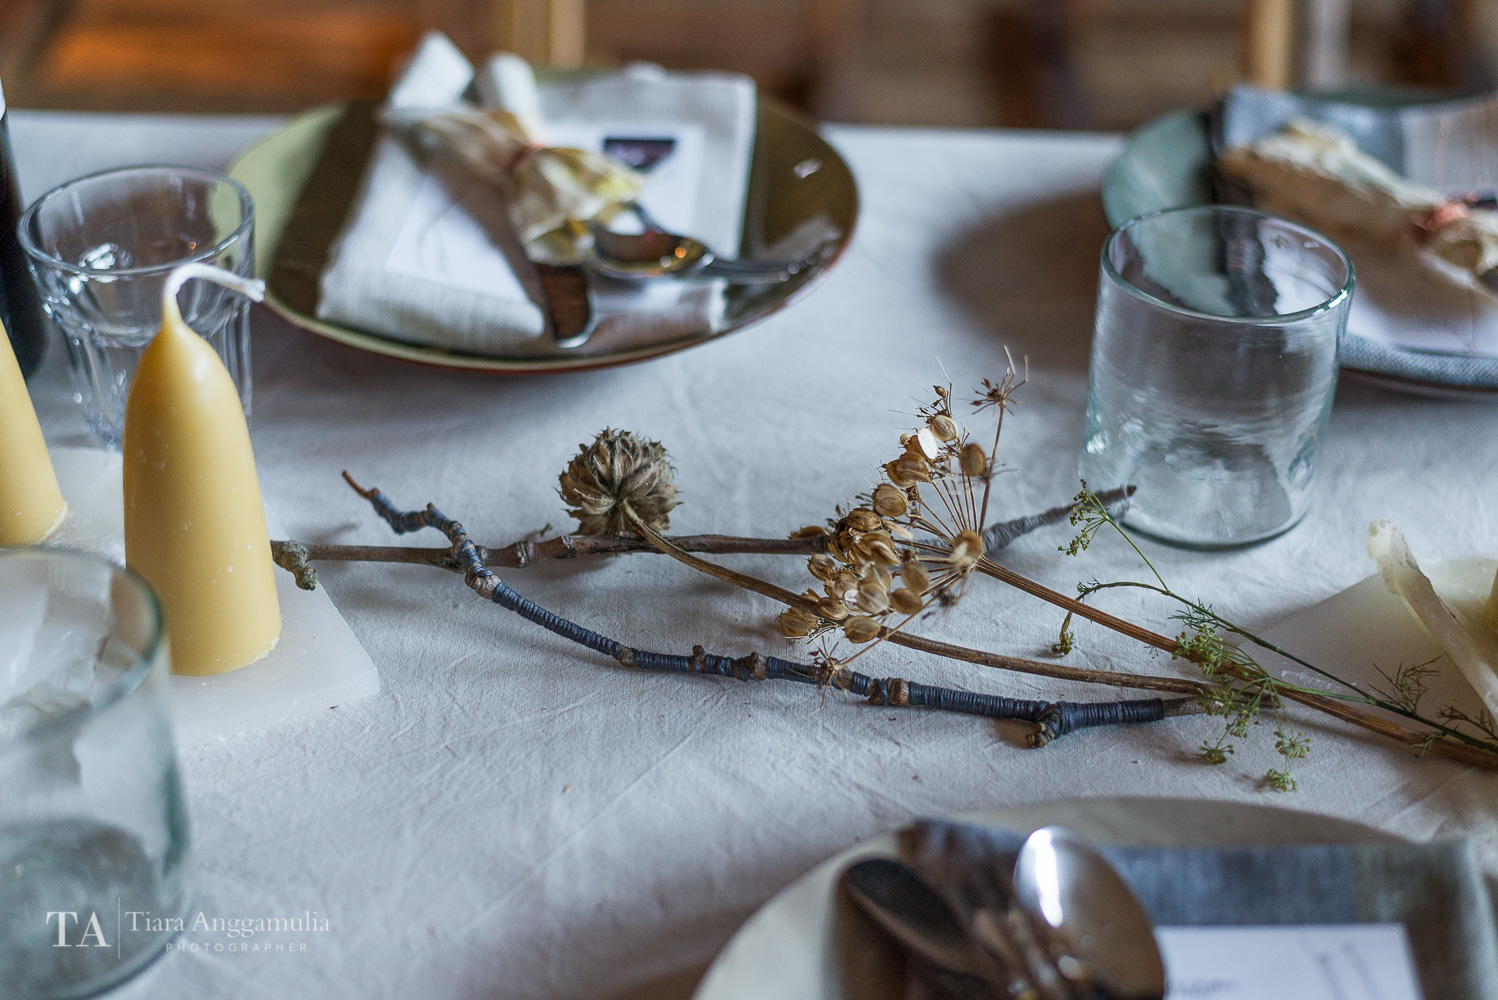 Details on the dining table.